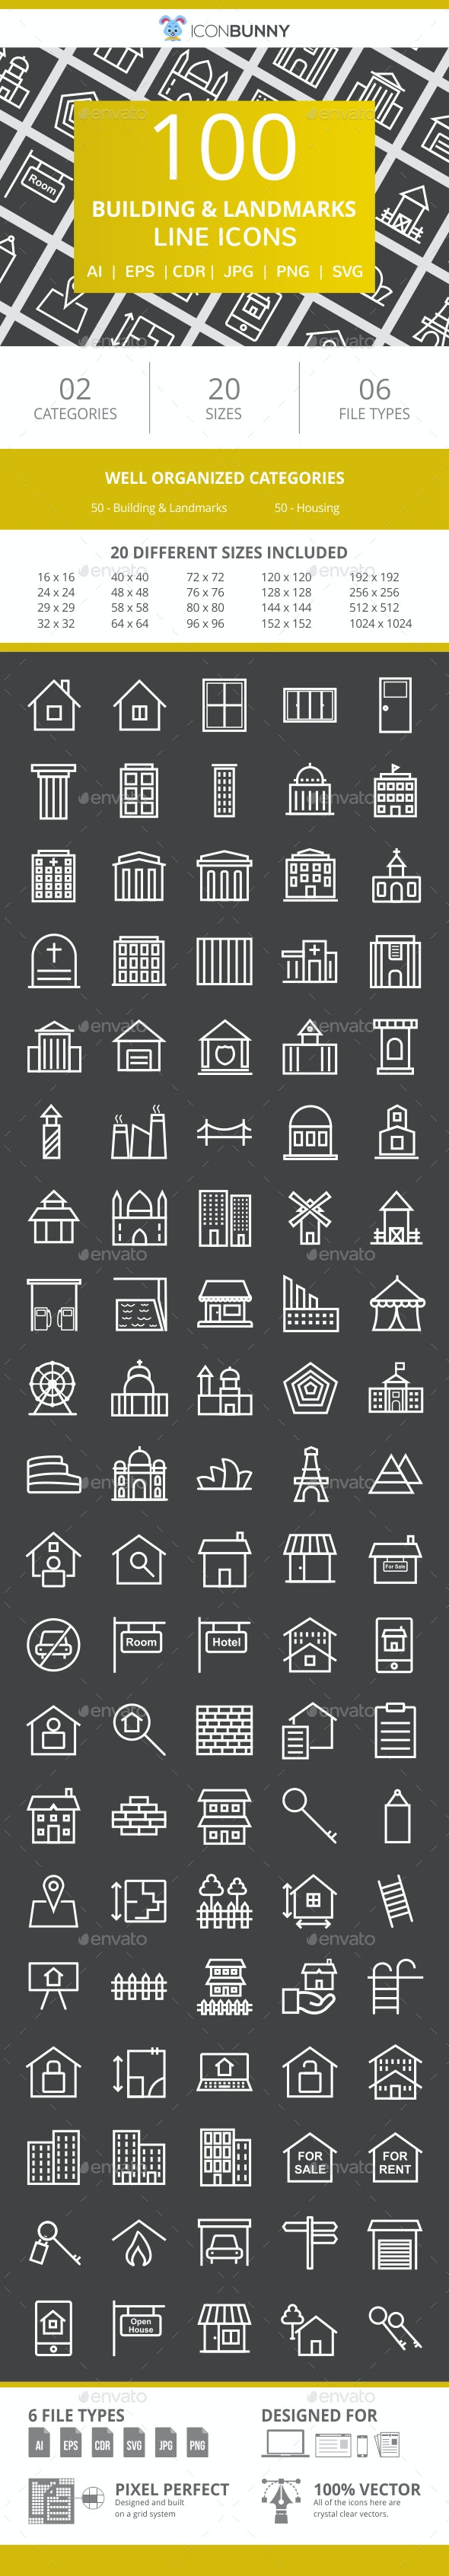 100 Building & Landmarks Line Inverted Icons - Icons